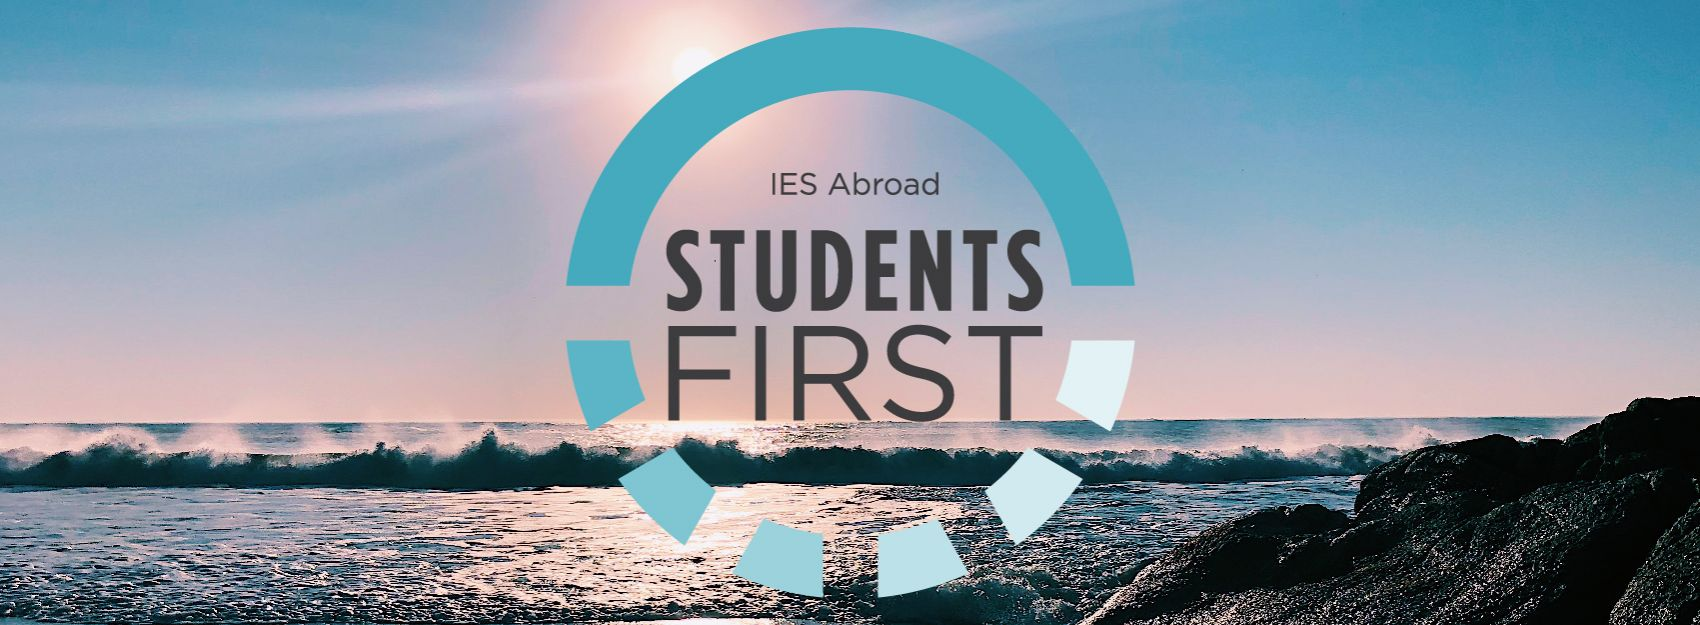 IES Abroad students first logo on sunset beach background